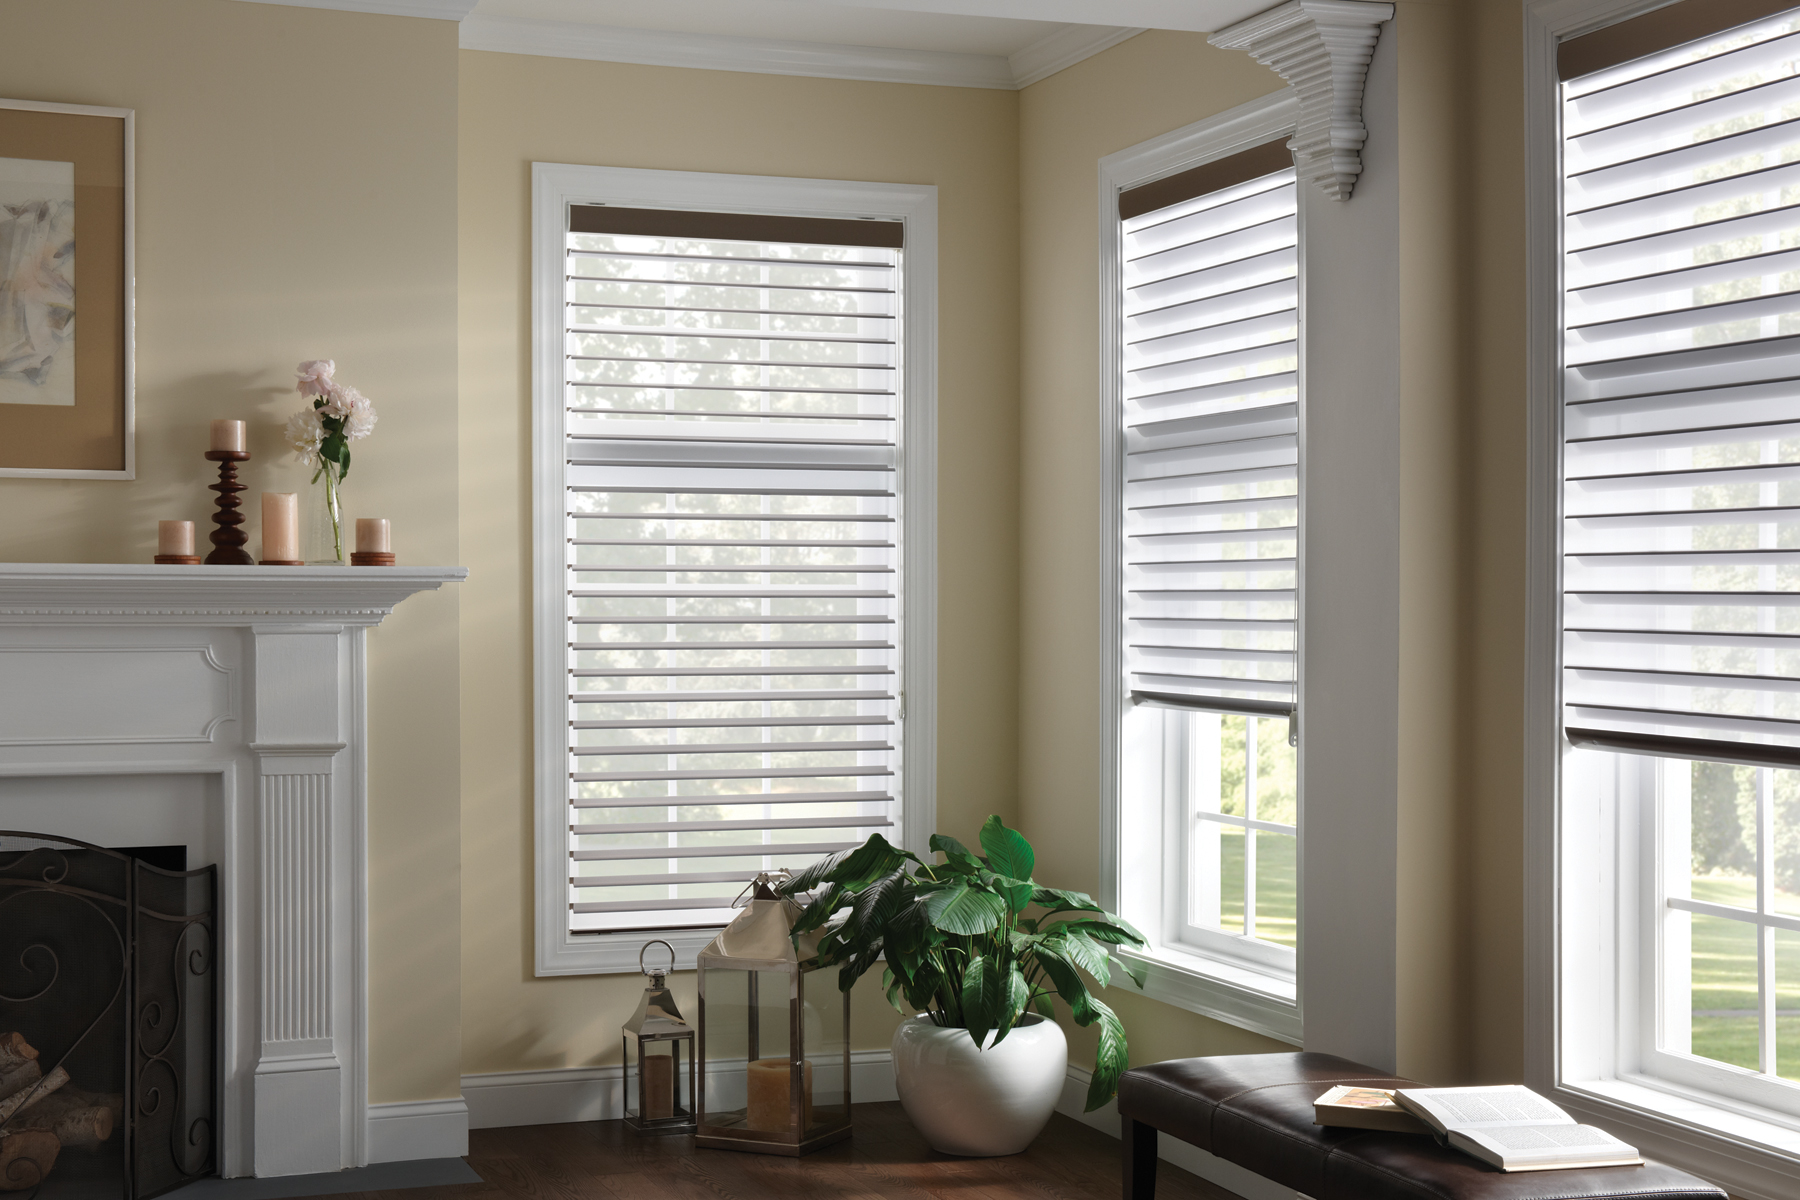 light shadings filtering sheer la comfortex khaki khakiteallr blinds shades linen shangri window coverings